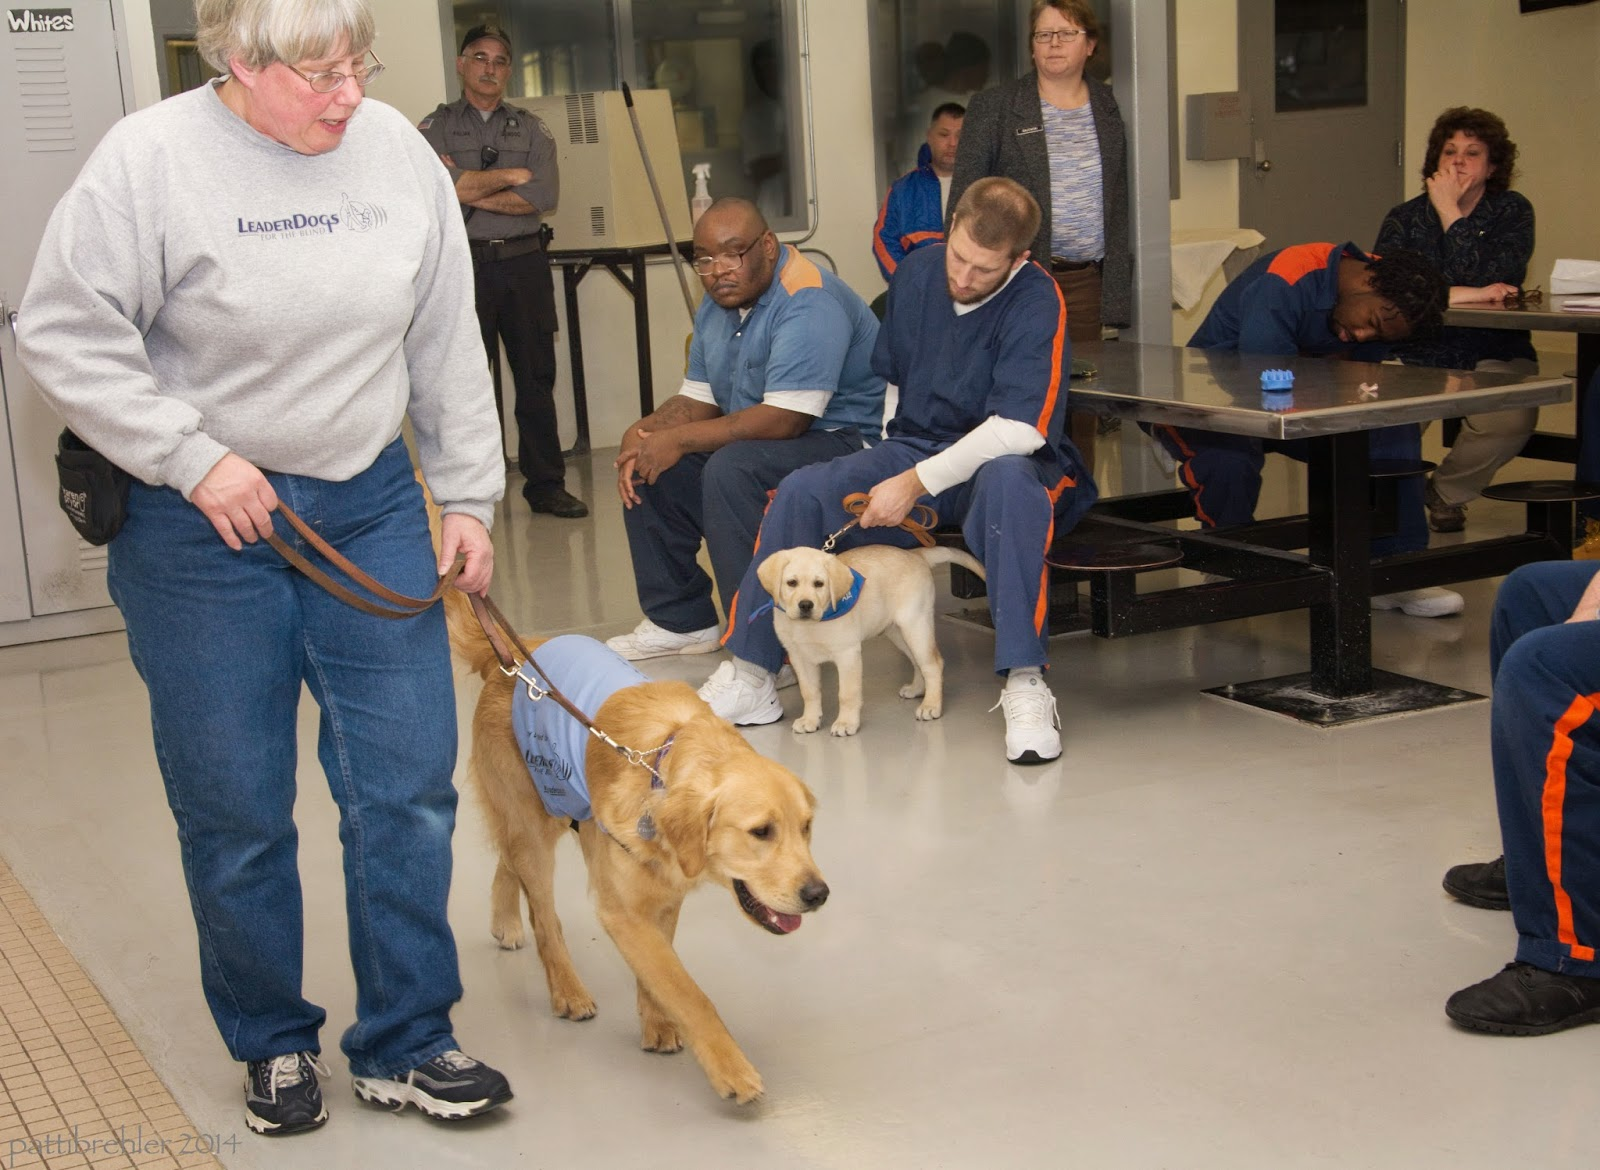 """A woman with short white hair and glasses, wearing a grey sweatshirt and blue jeans, holds the leash of an older golden retriever puppy. They are on the left side of the photo. The puppy is wearing the baby blue """"working"""" vest that identifies him as a puppy in training for Leader Dogs for the Blind. Several men are sitting int he background watching. One in the middle is holding the leash of the small yelllow lab, who is standing and watching the other dog intently."""